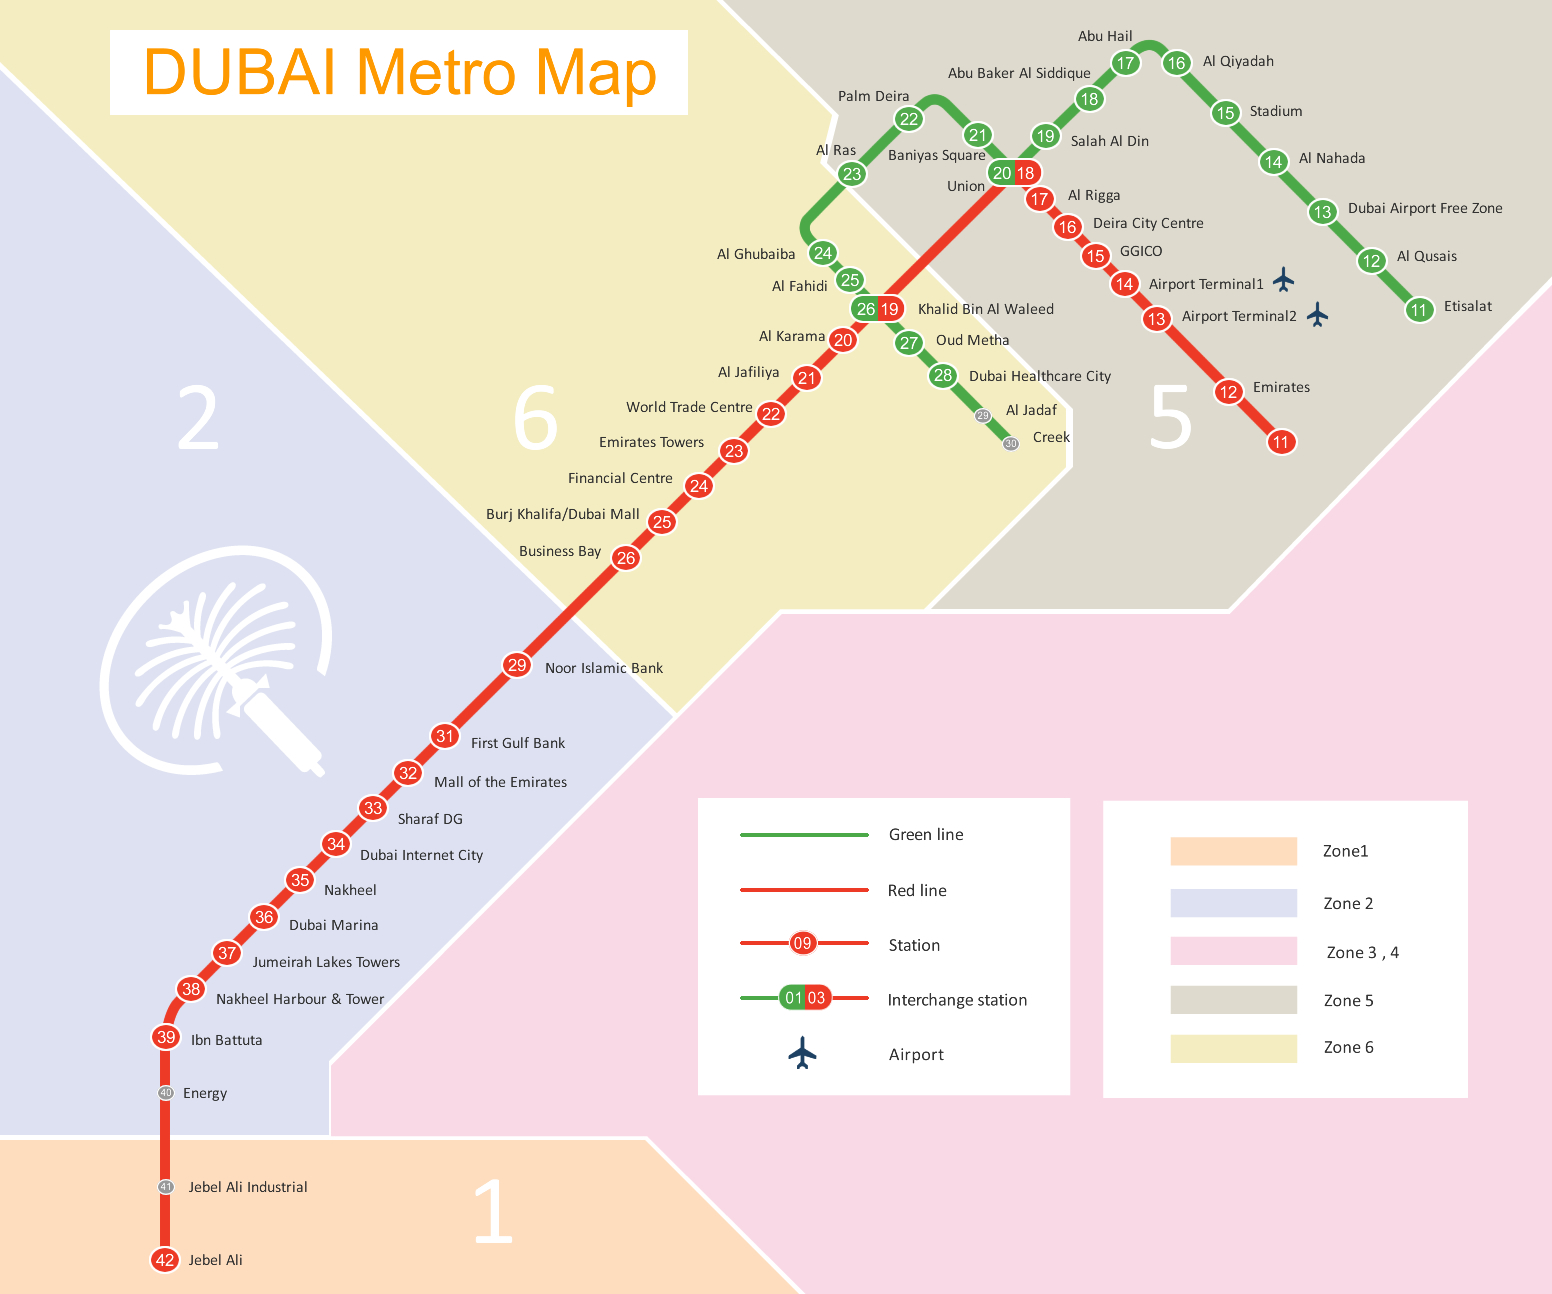 Subway Map Holiday.Dubai Metro Route Map Dubai Subway Map Dubai Rail Map Routes